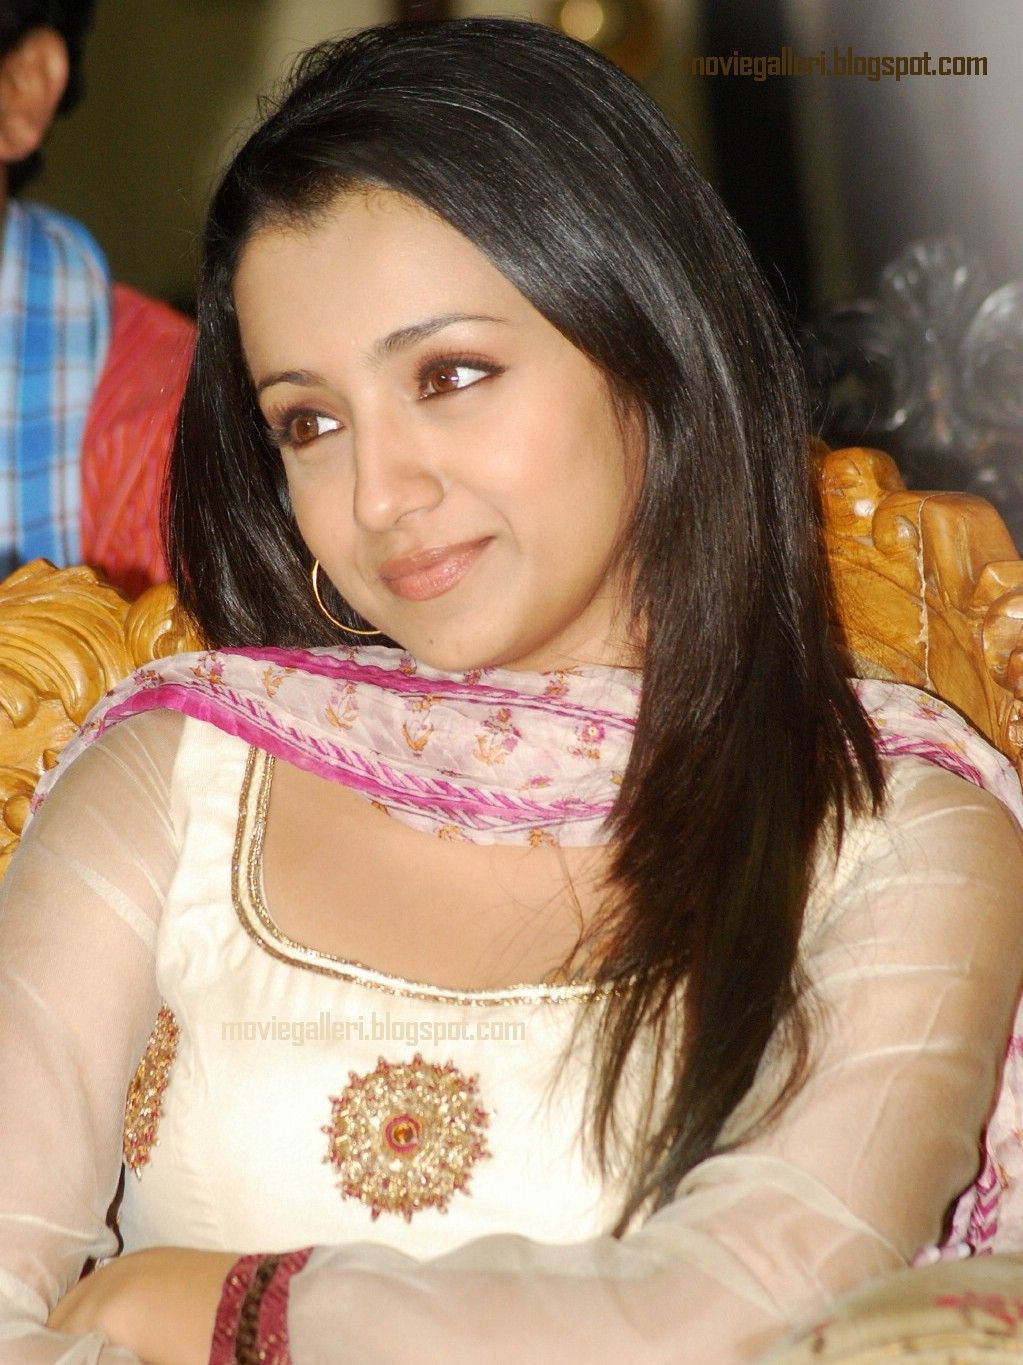 Trisha krishnan wallpapers trisha krishnan wallpaper 1 - 49 Best Trisha Krishnan Images On Pinterest Trisha Krishnan Indian Actresses And Bollywood